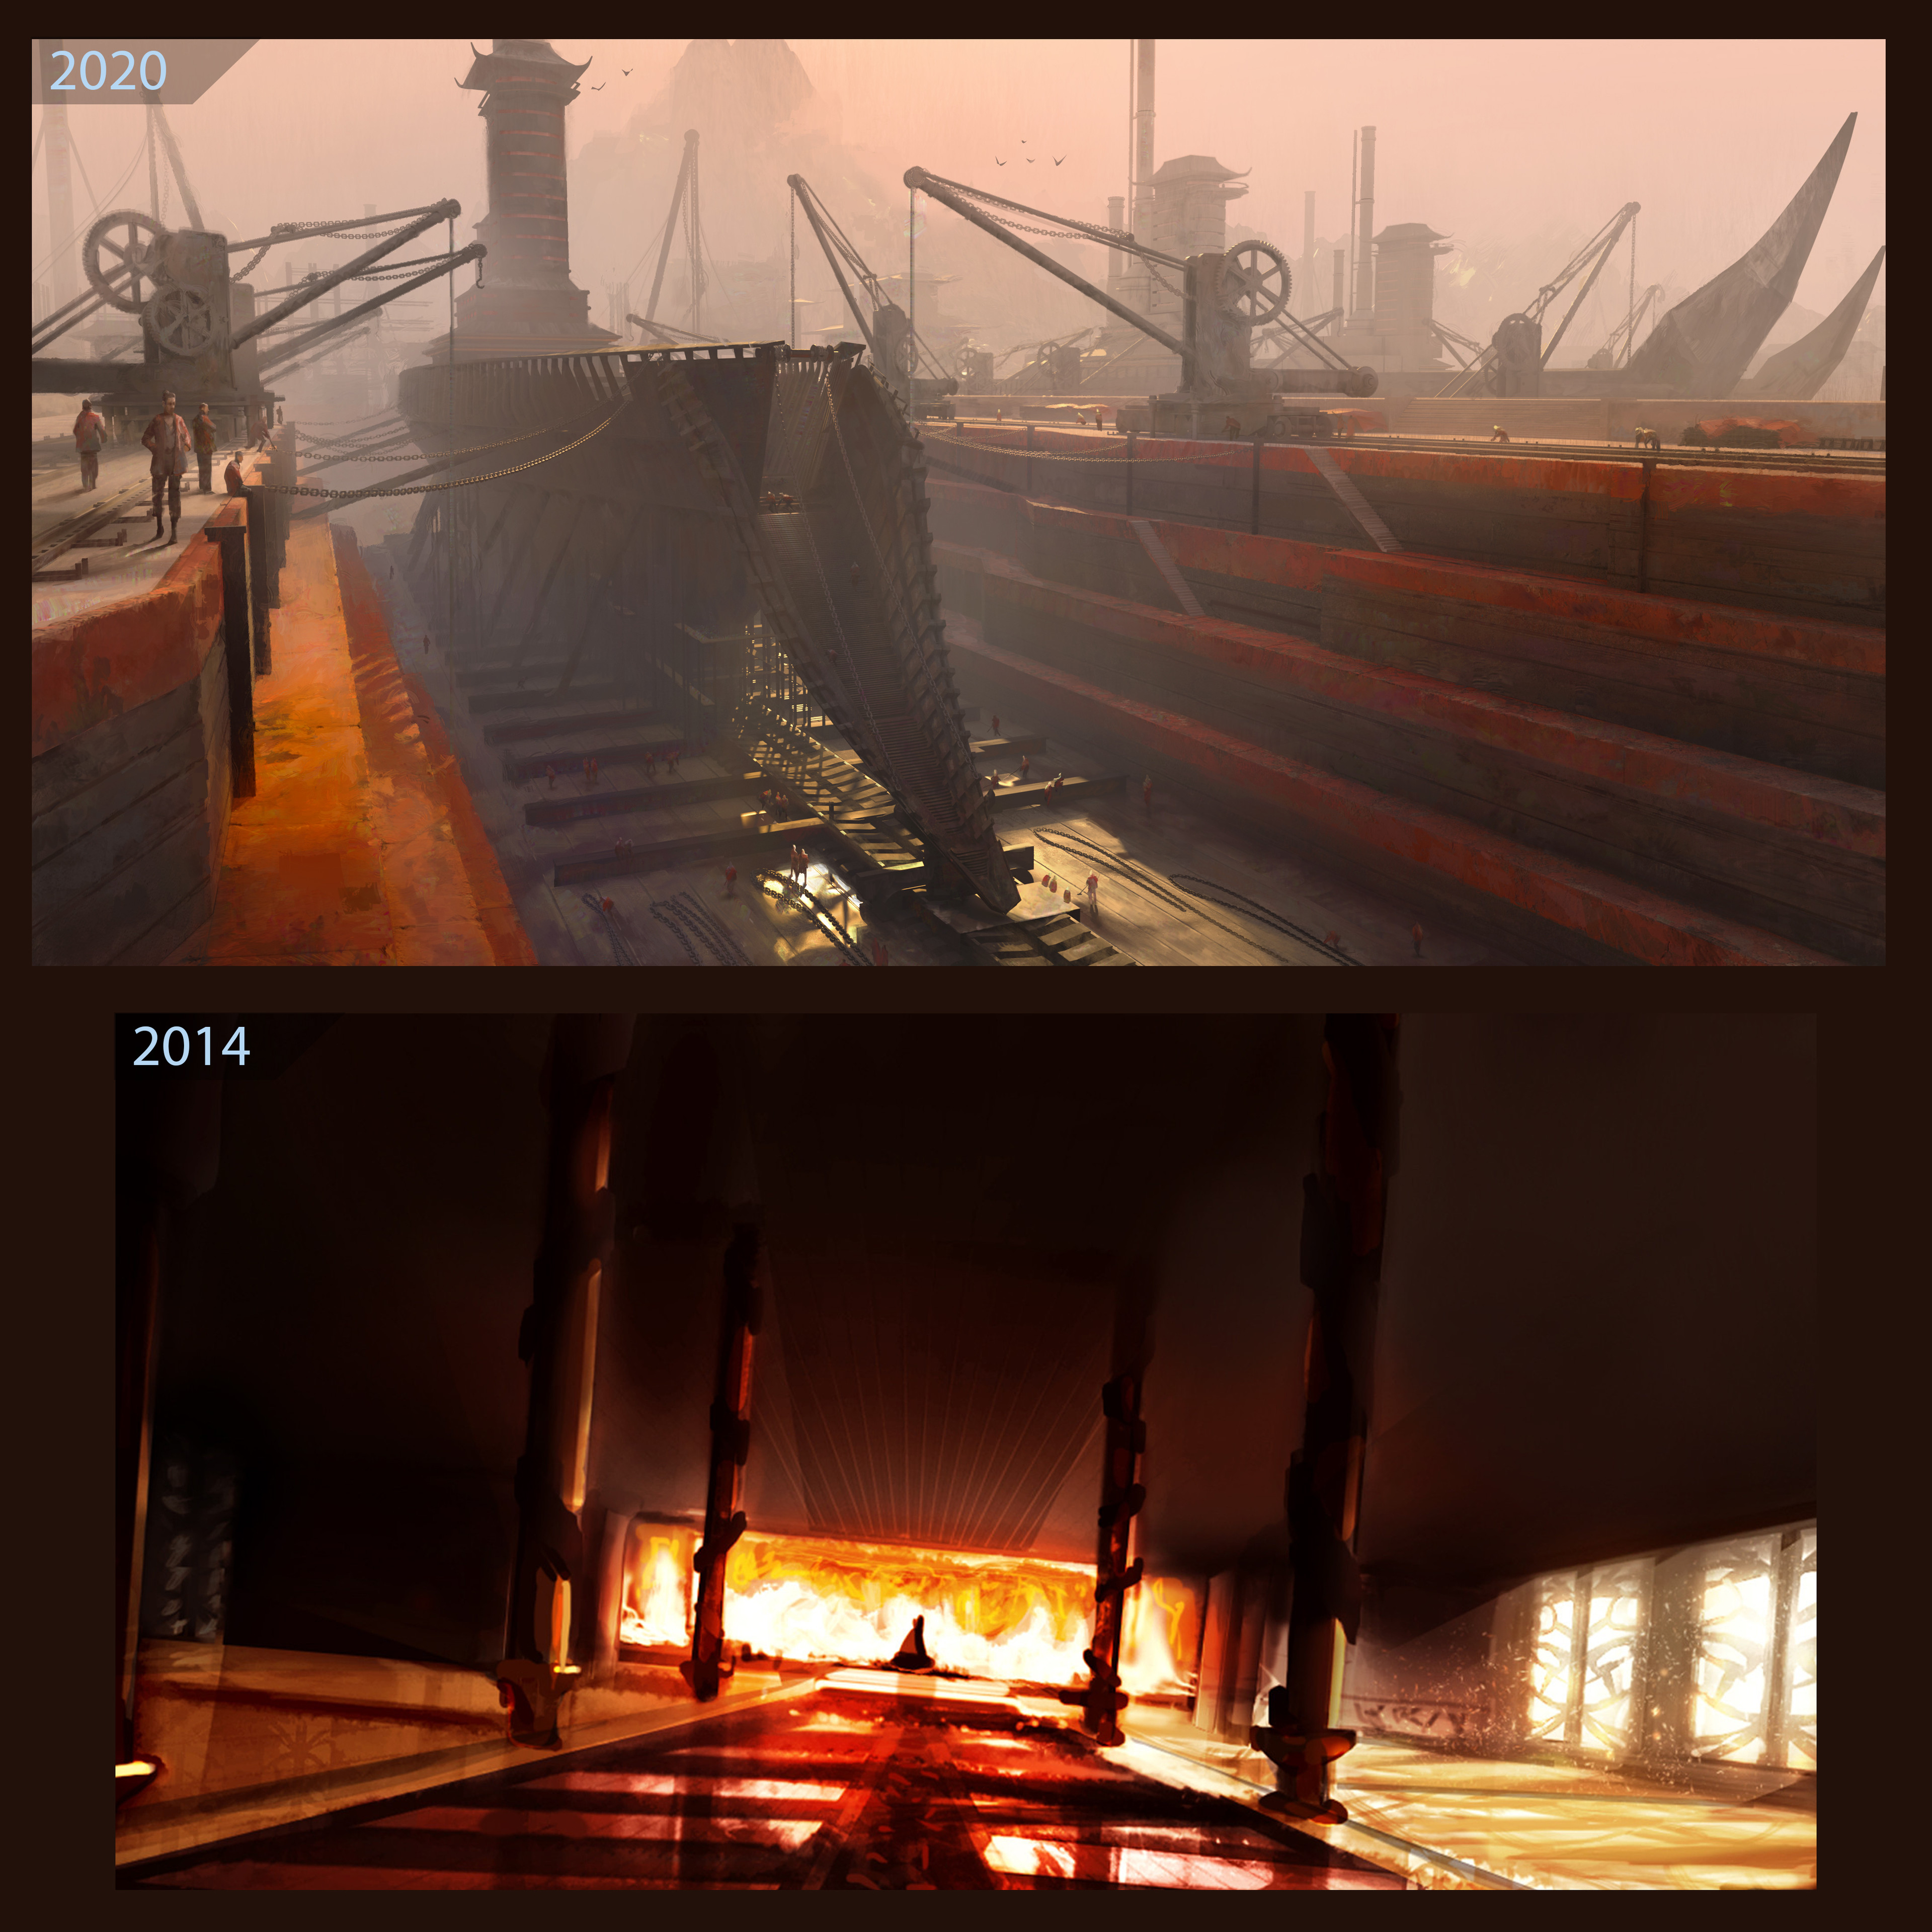 Thought it'd be fitting (or hopefully helpful to other artists) to show the comparison to my 2014 version and this updated one.